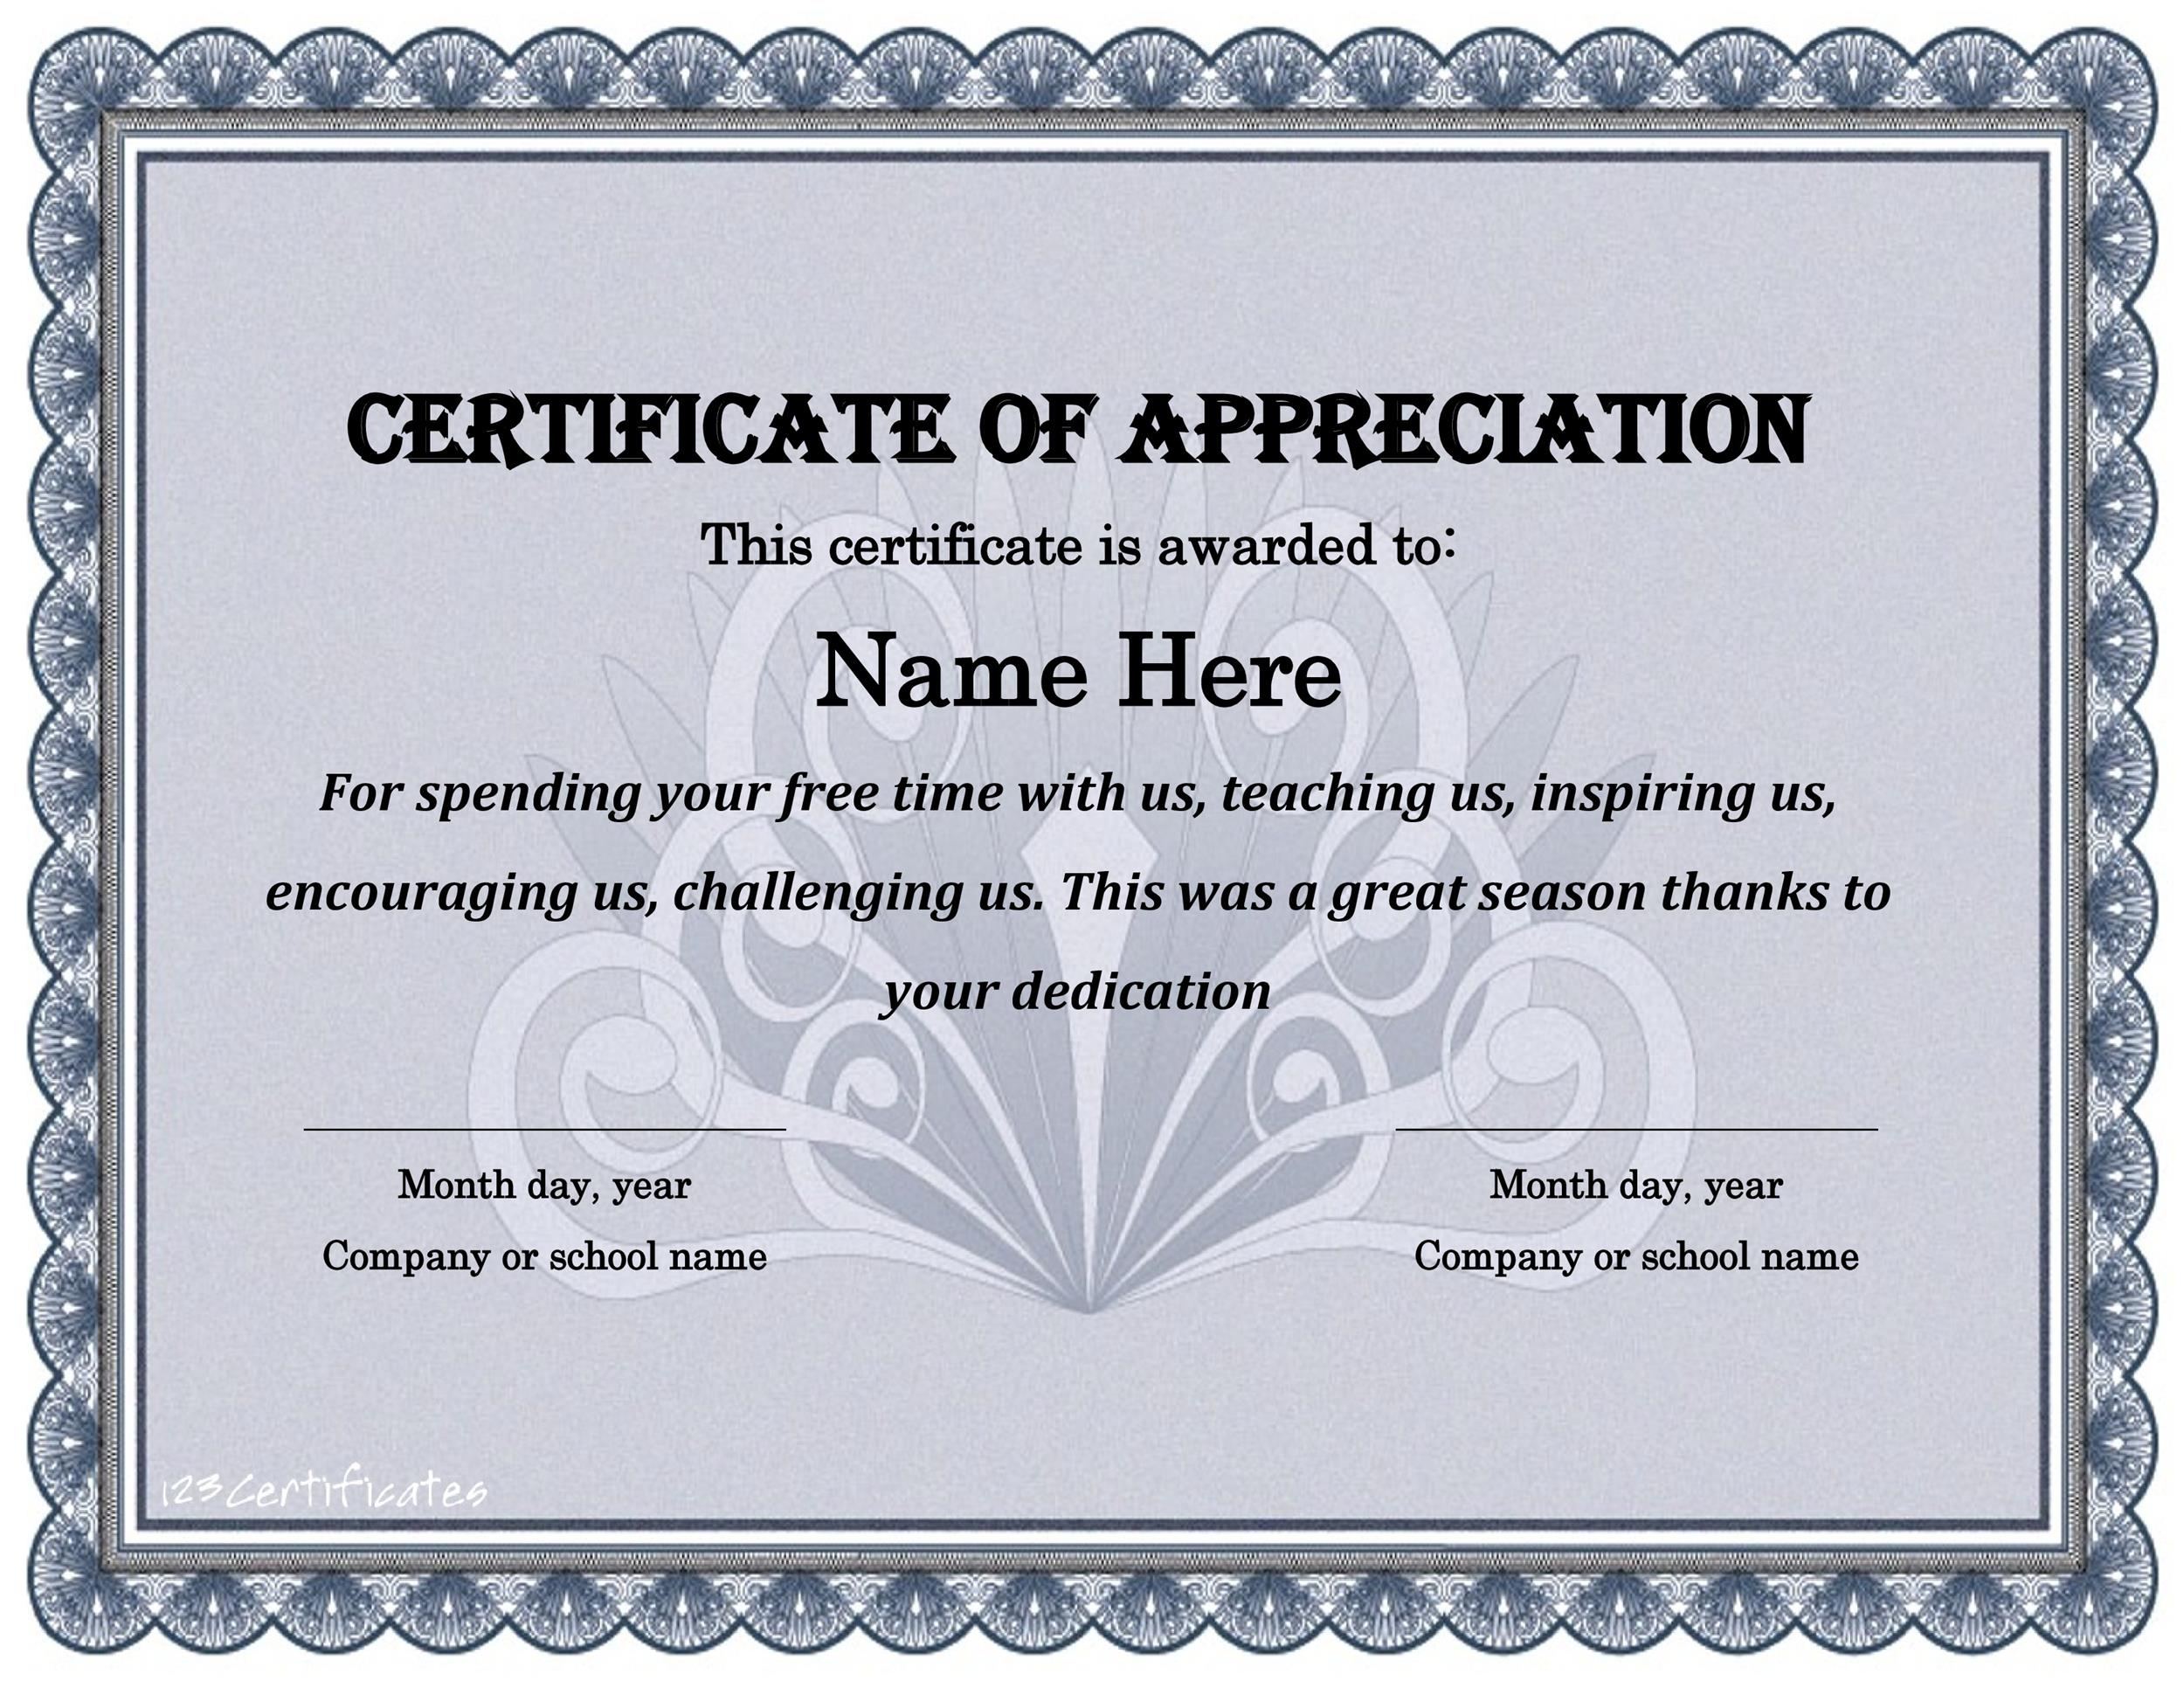 Printable Certificate Of Appreciation 21 Pertaining To Certificate Of Appreciation Template For Word